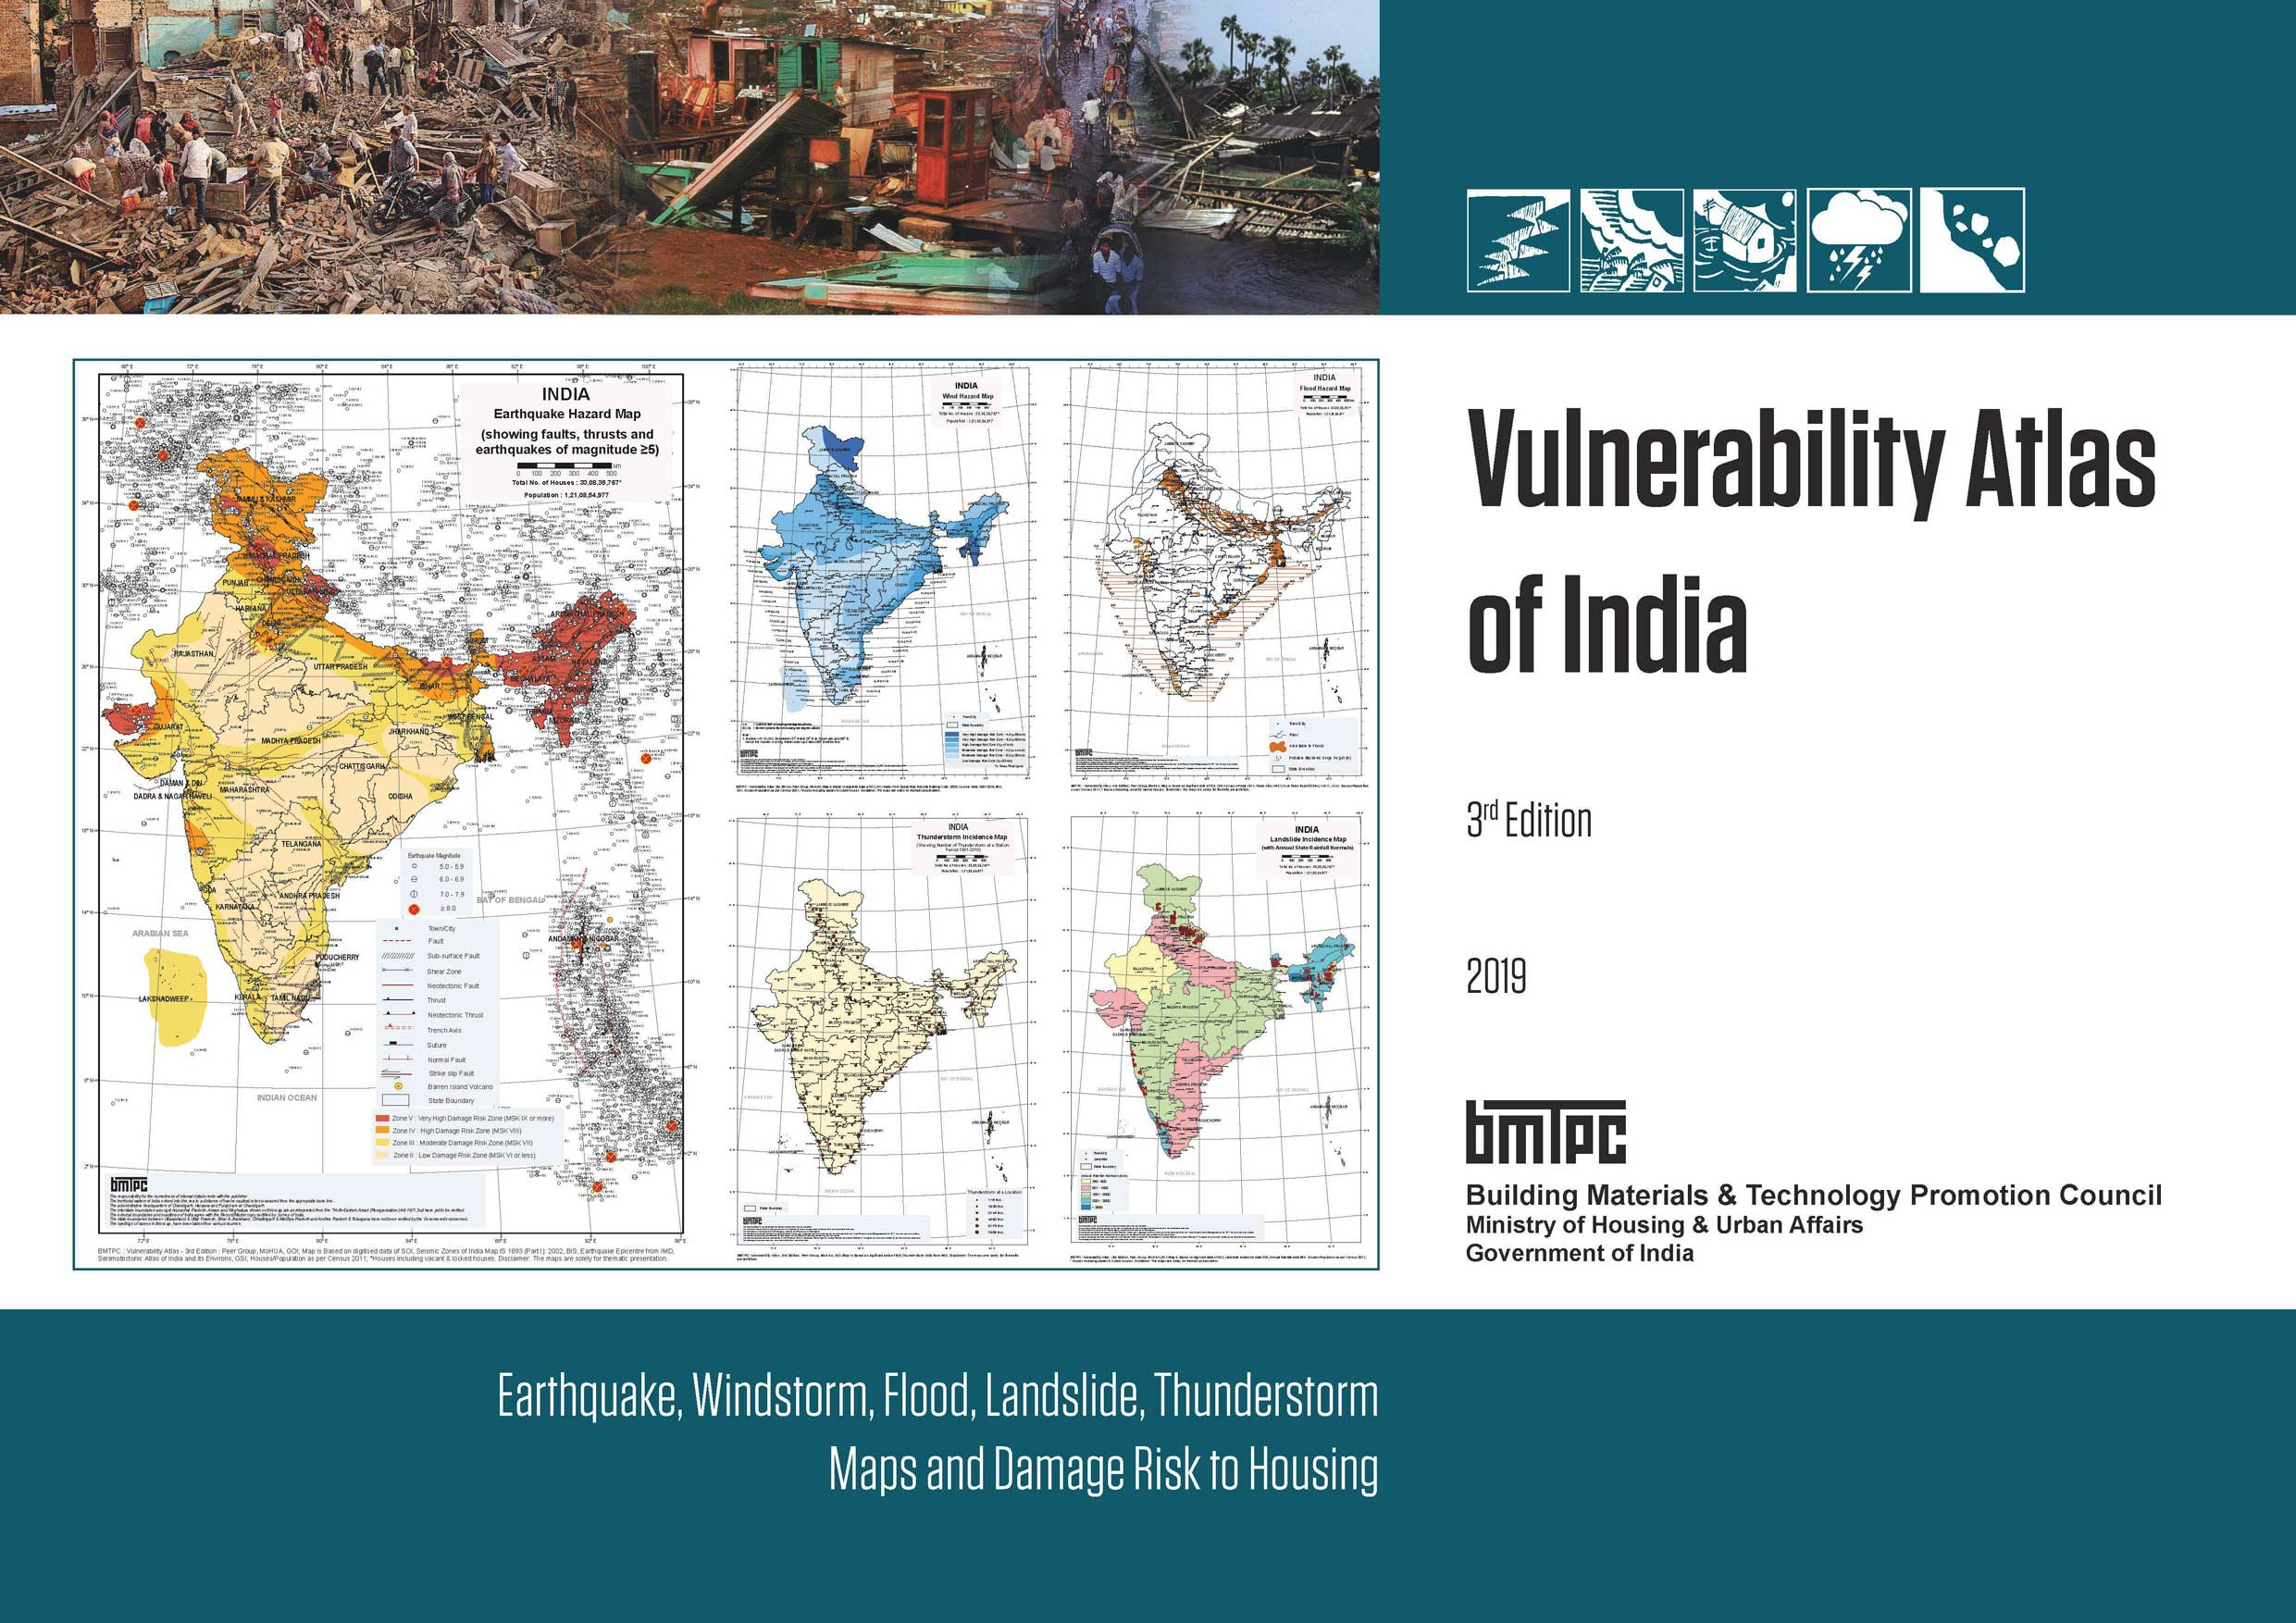 Vulnerability Atlas of India - 3rd Edition